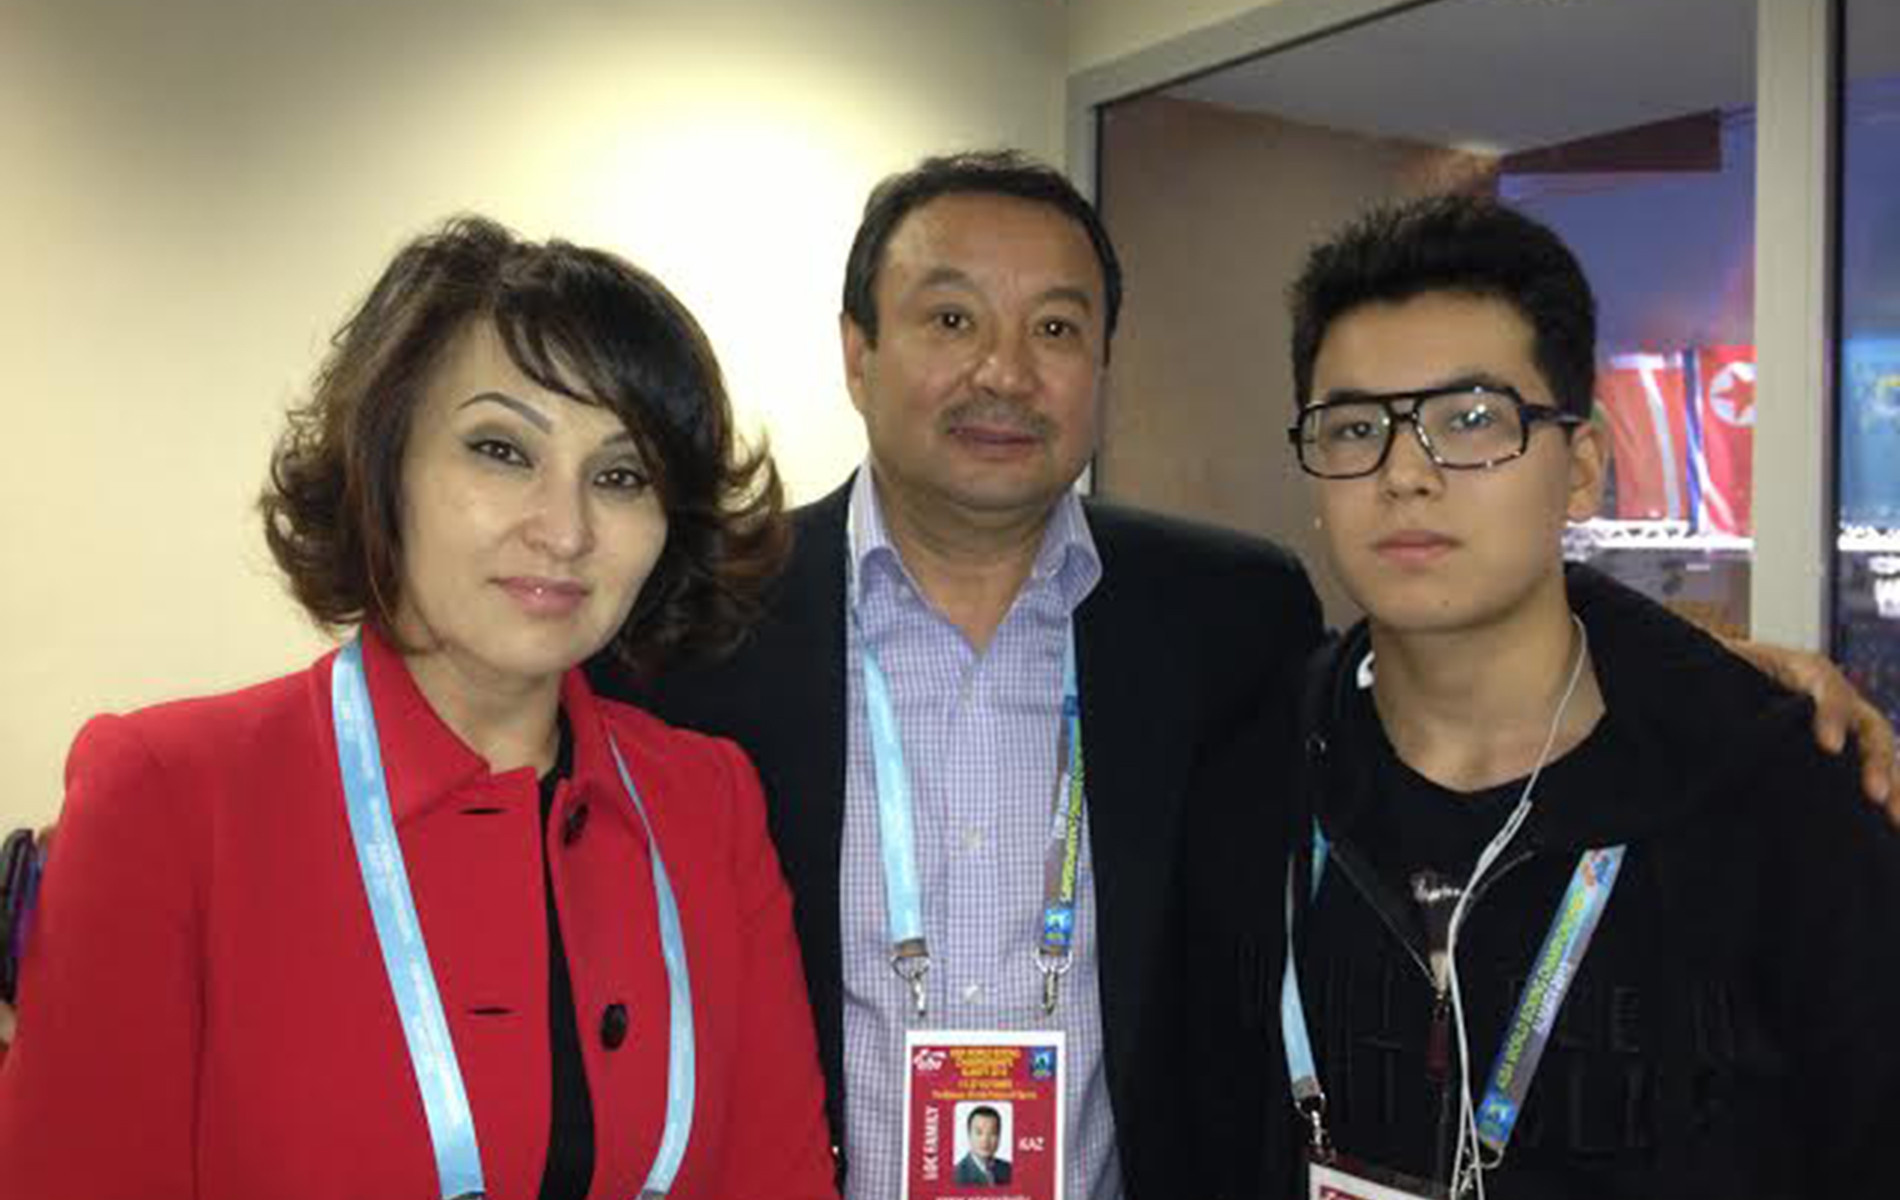 Konakbayev cleared to resume AIBA President campaign prior to CAS decision on eligibility